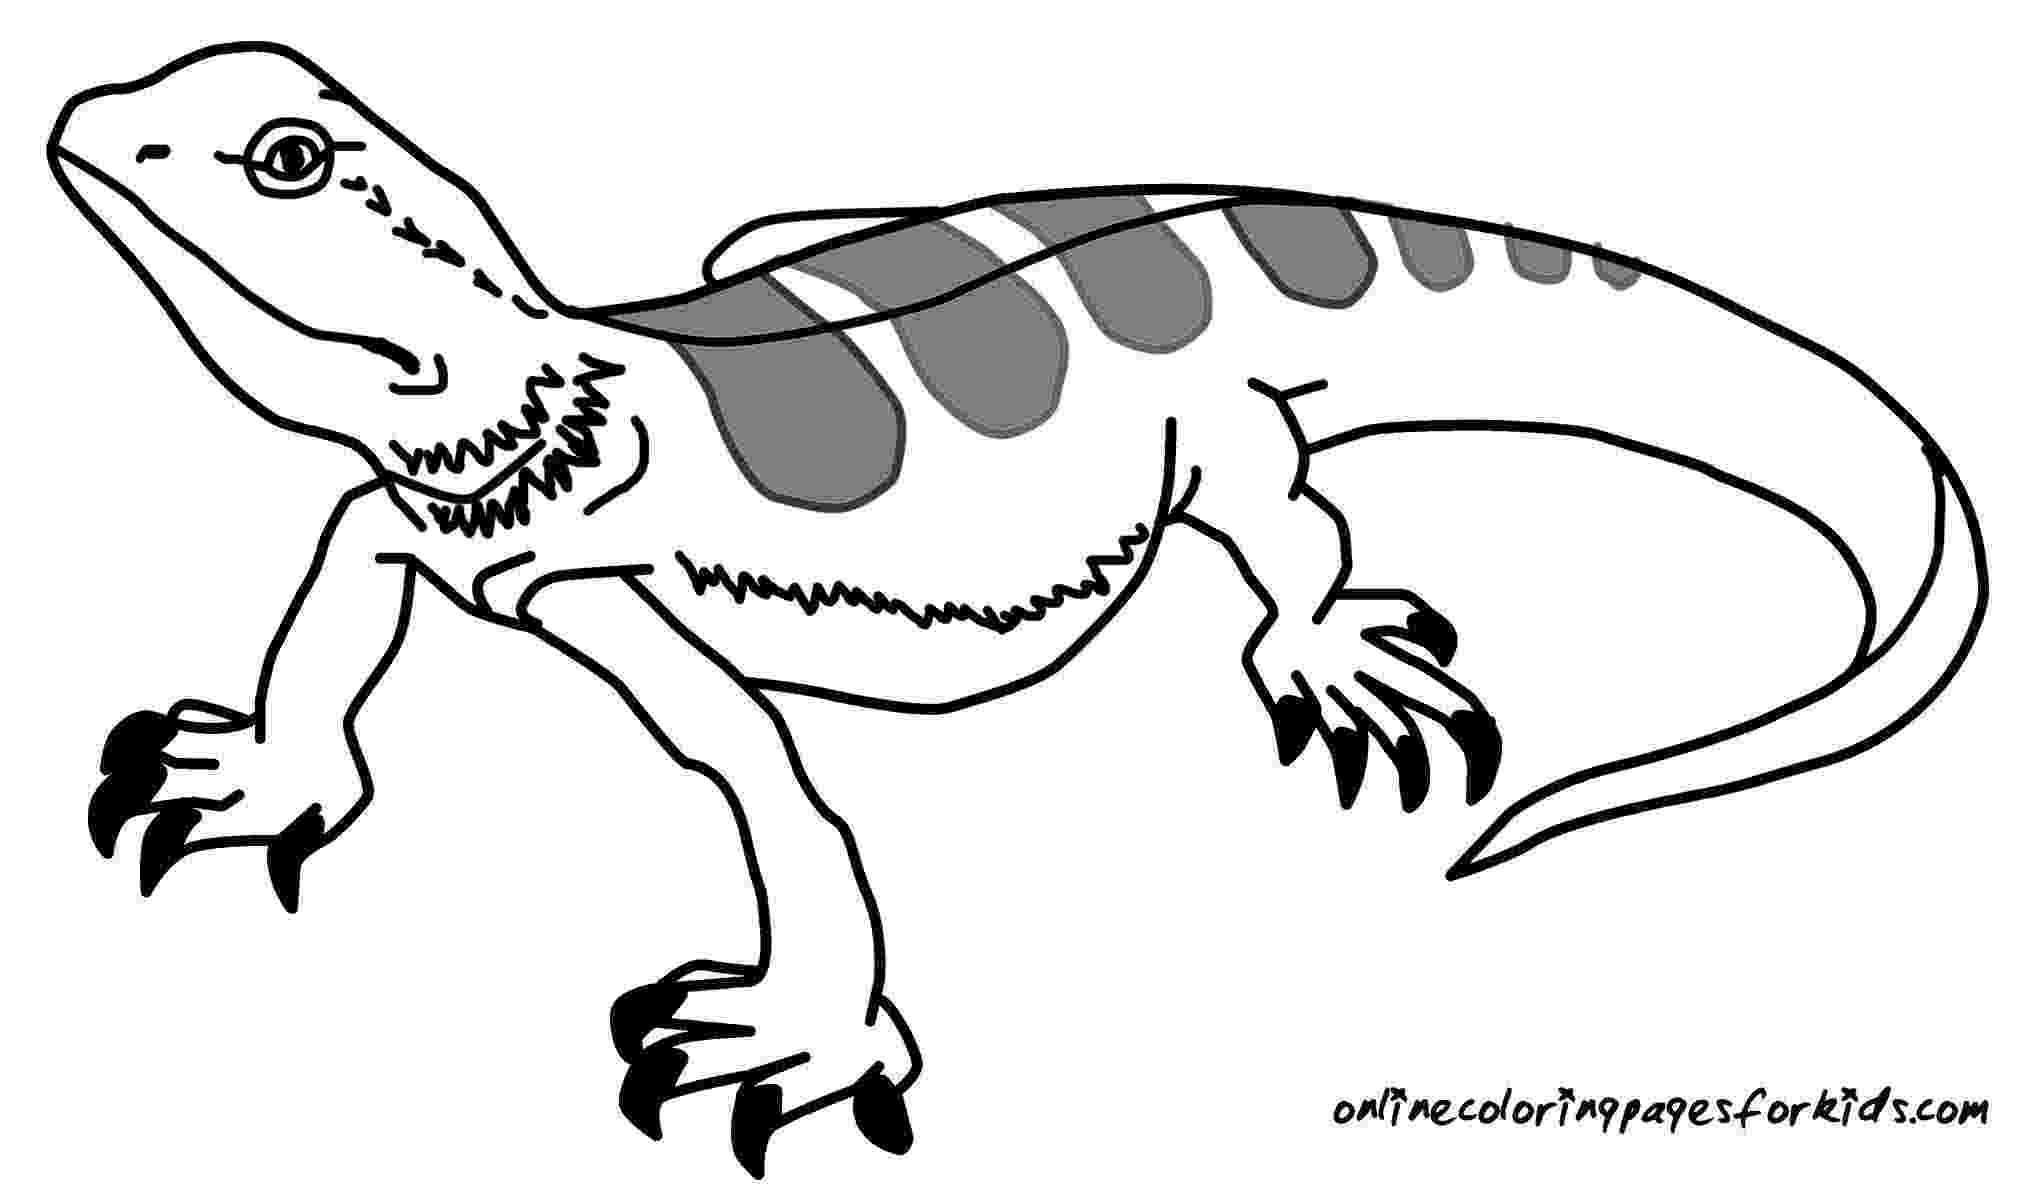 lizard to color lizard coloring pages to download and print for free color lizard to